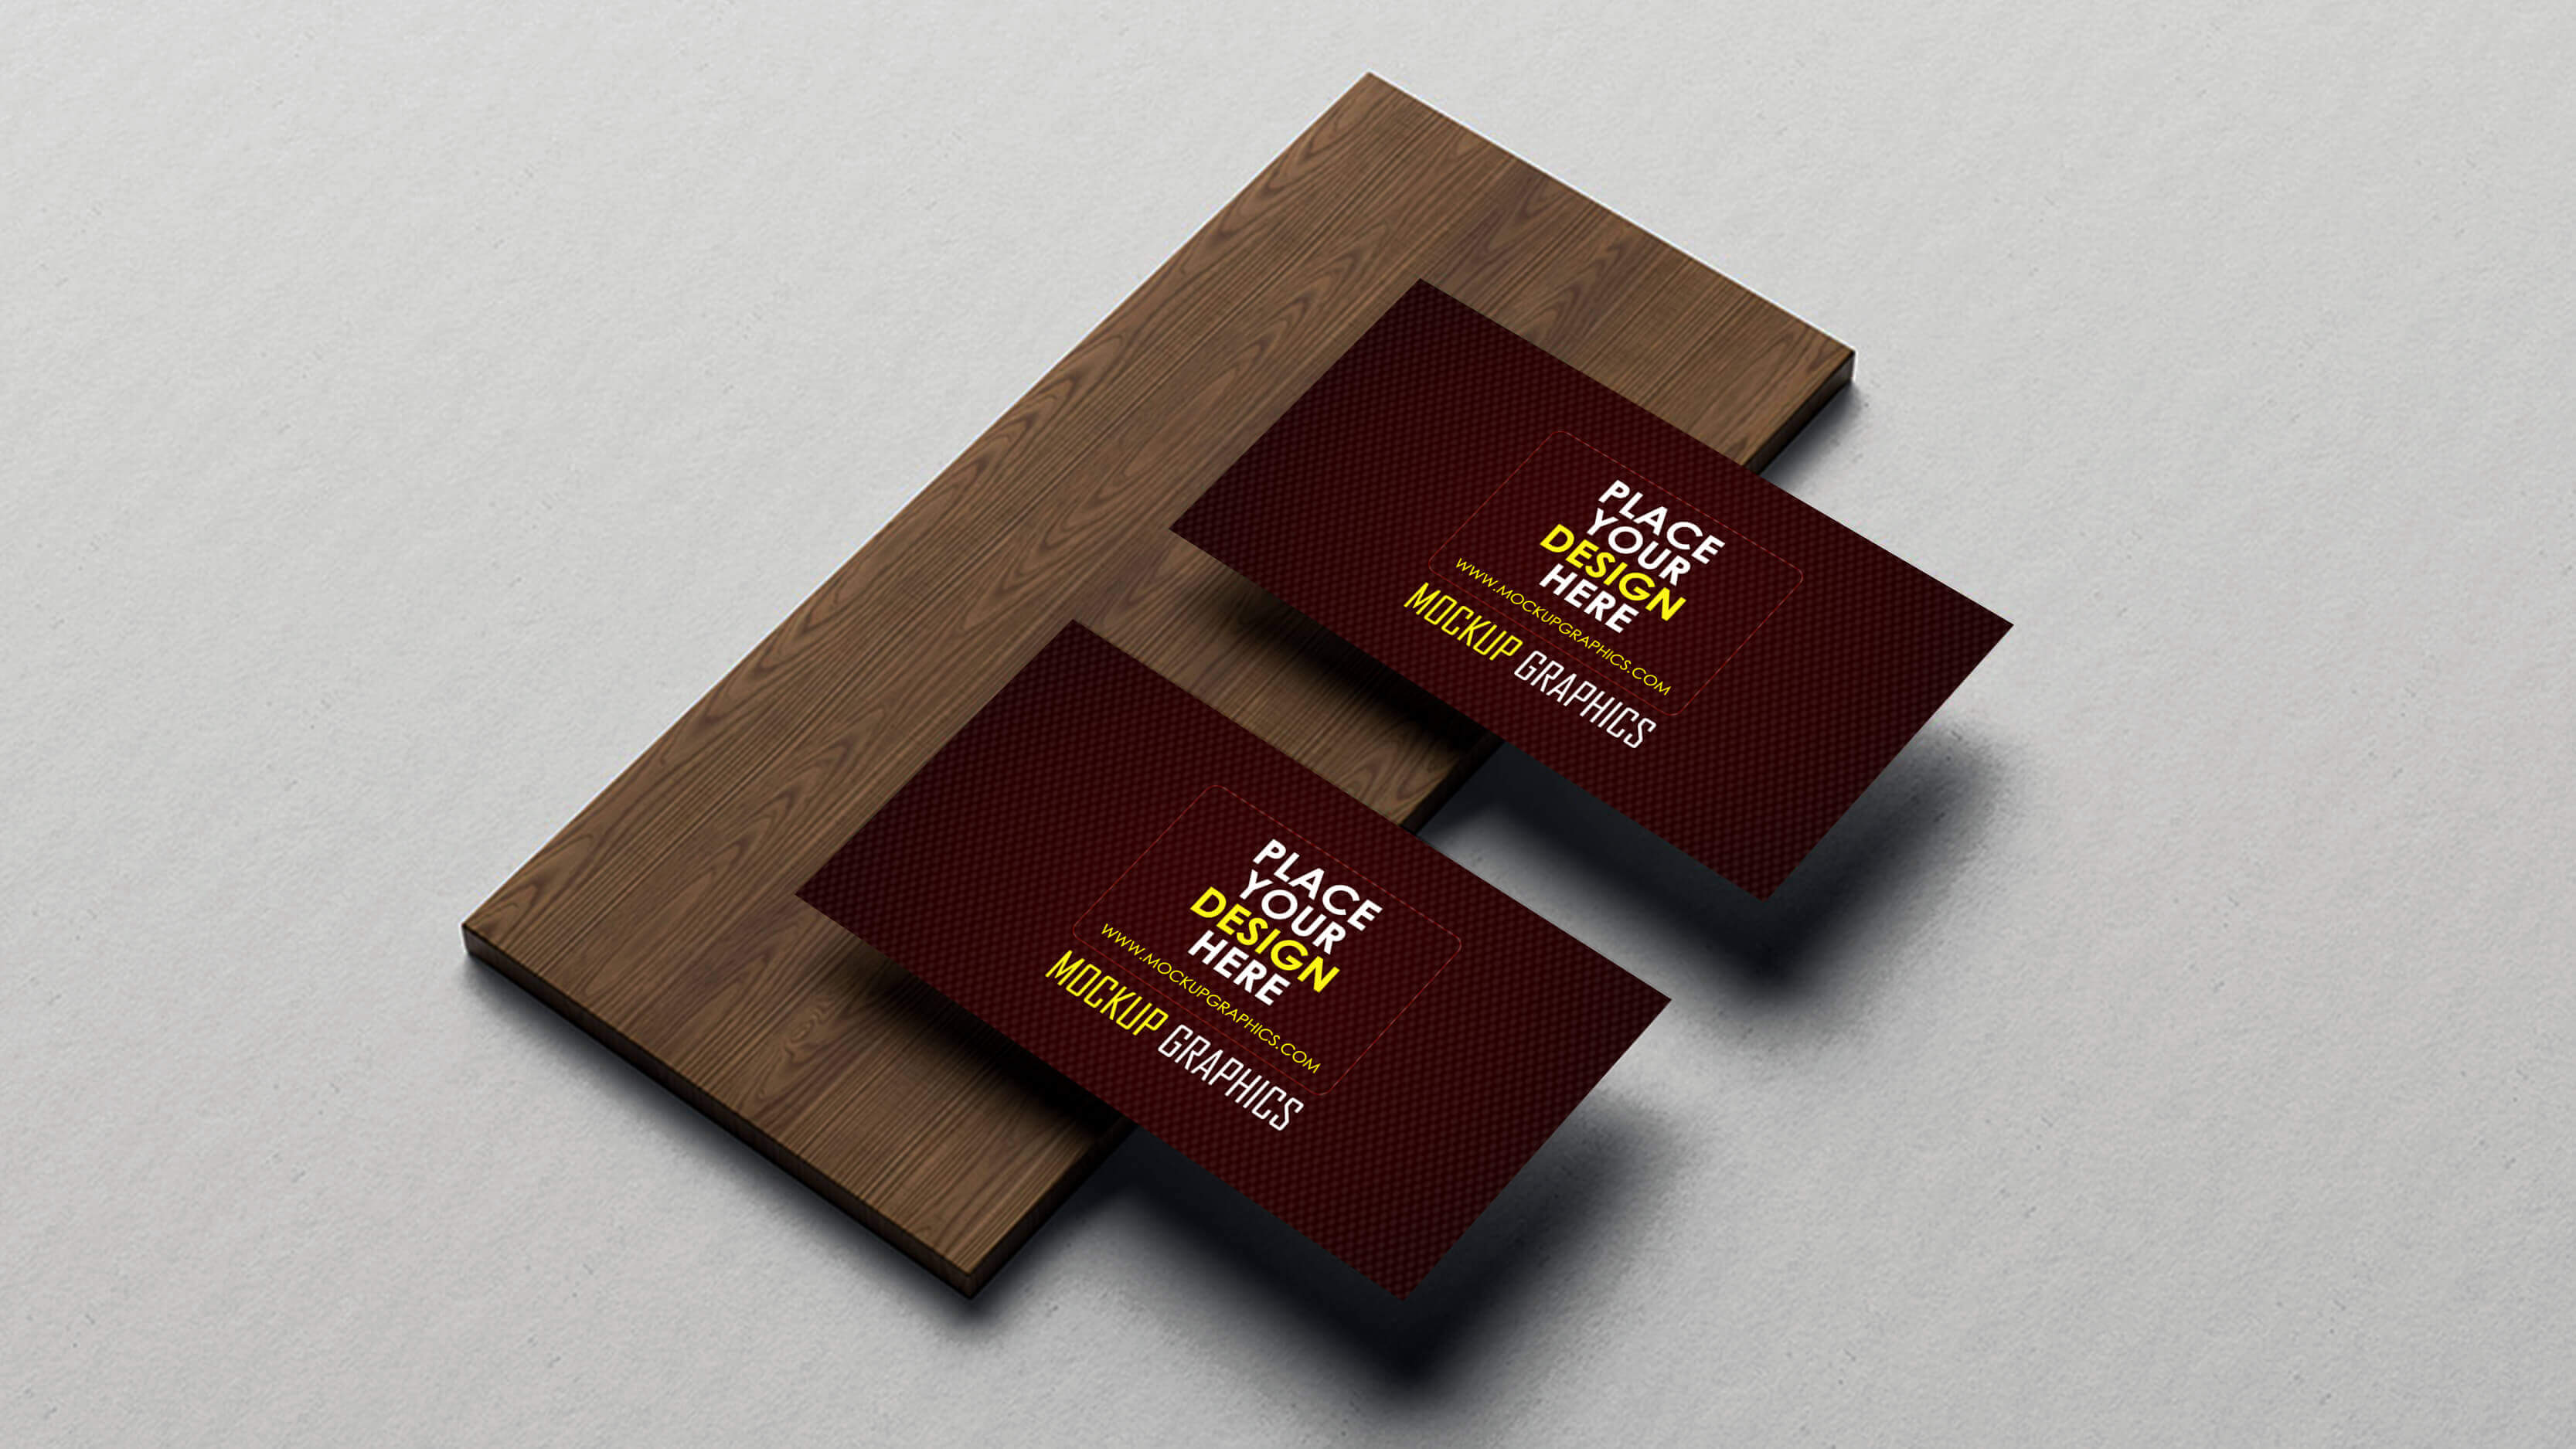 psd business card mockup - www.mockupgraphics.com